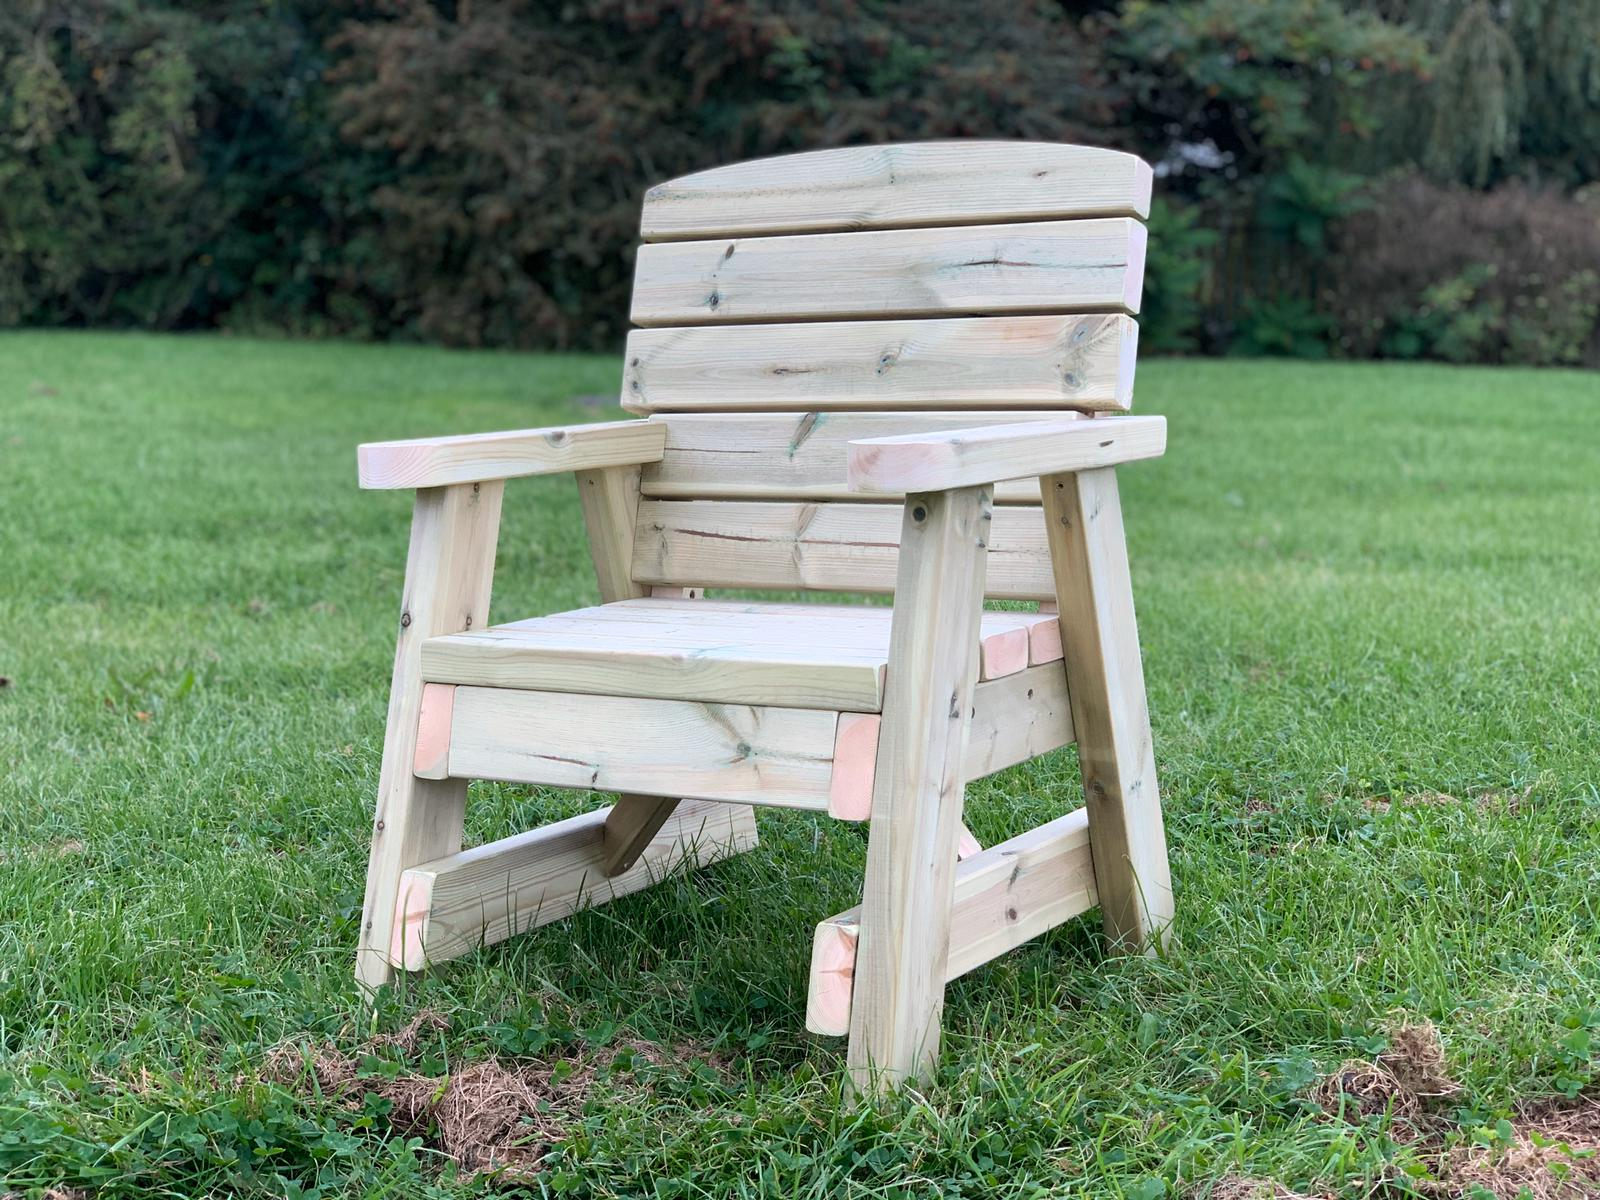 right side view of a single wooden garden chair